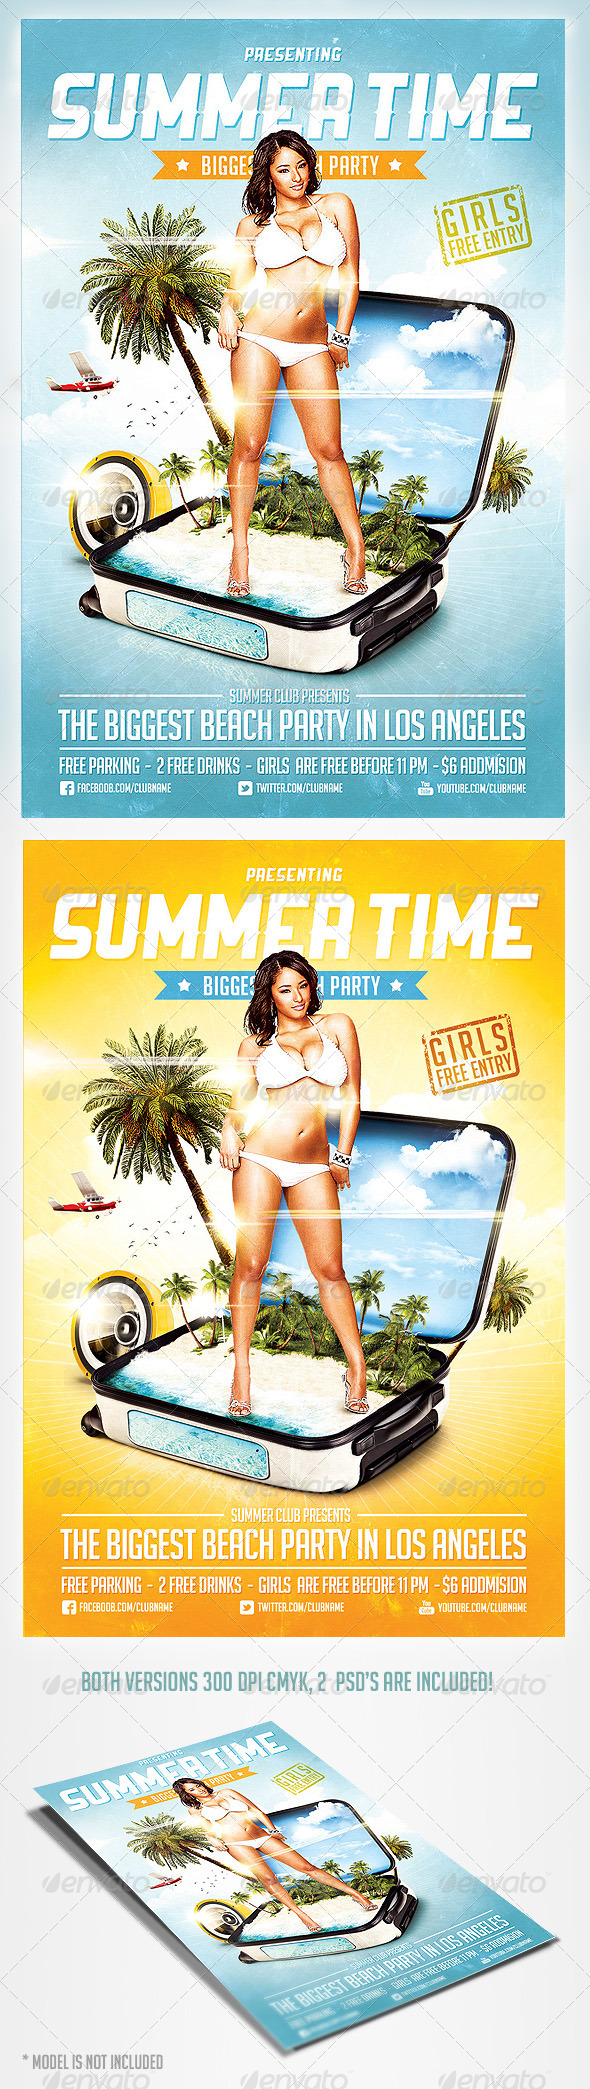 GraphicRiver Summer Time Party Flyer 4416824